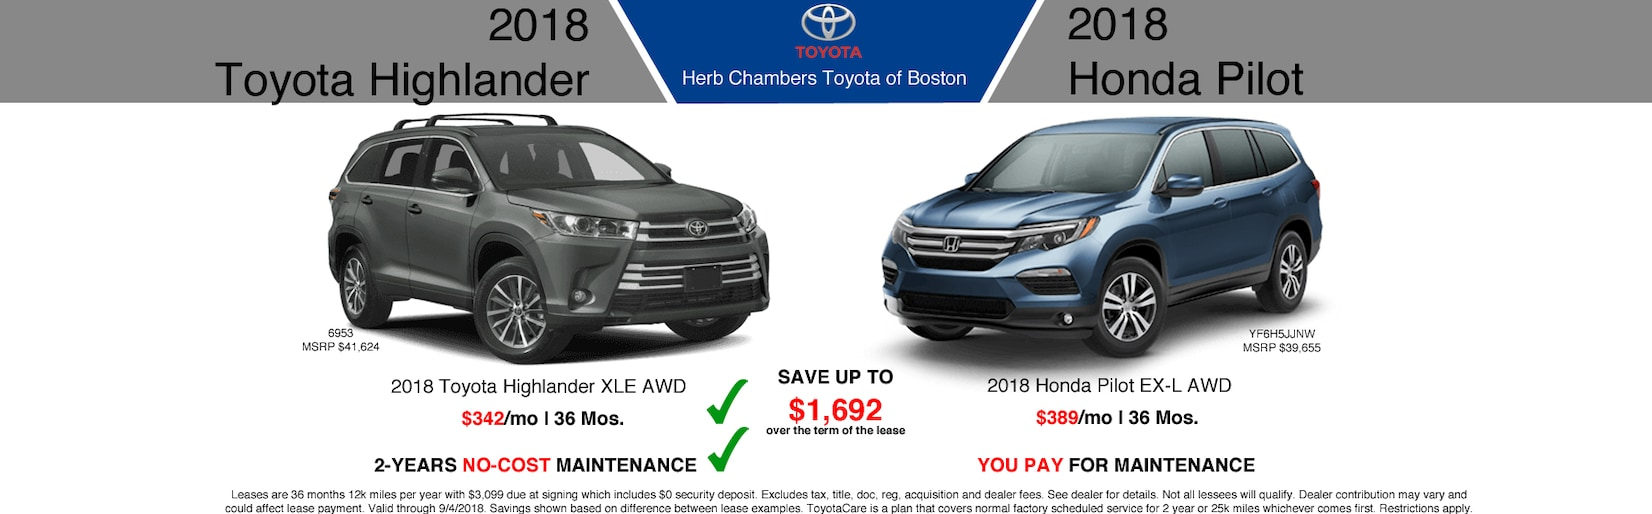 New & Used Car Dealership at Herb Chambers Toyota of Boston